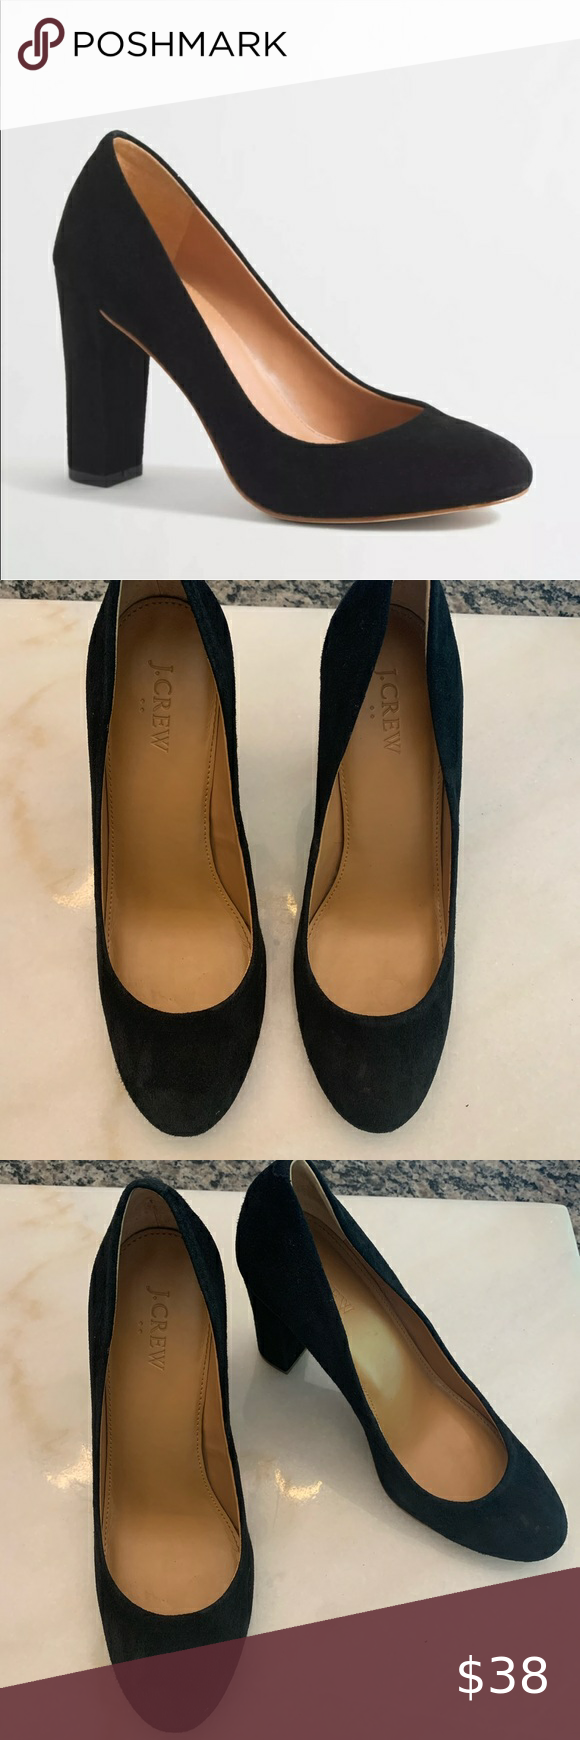 J Crew Factory Olive Black Suede Pumps 9 In 2020 Black Suede Pumps Suede Pumps Shoes Women Heels